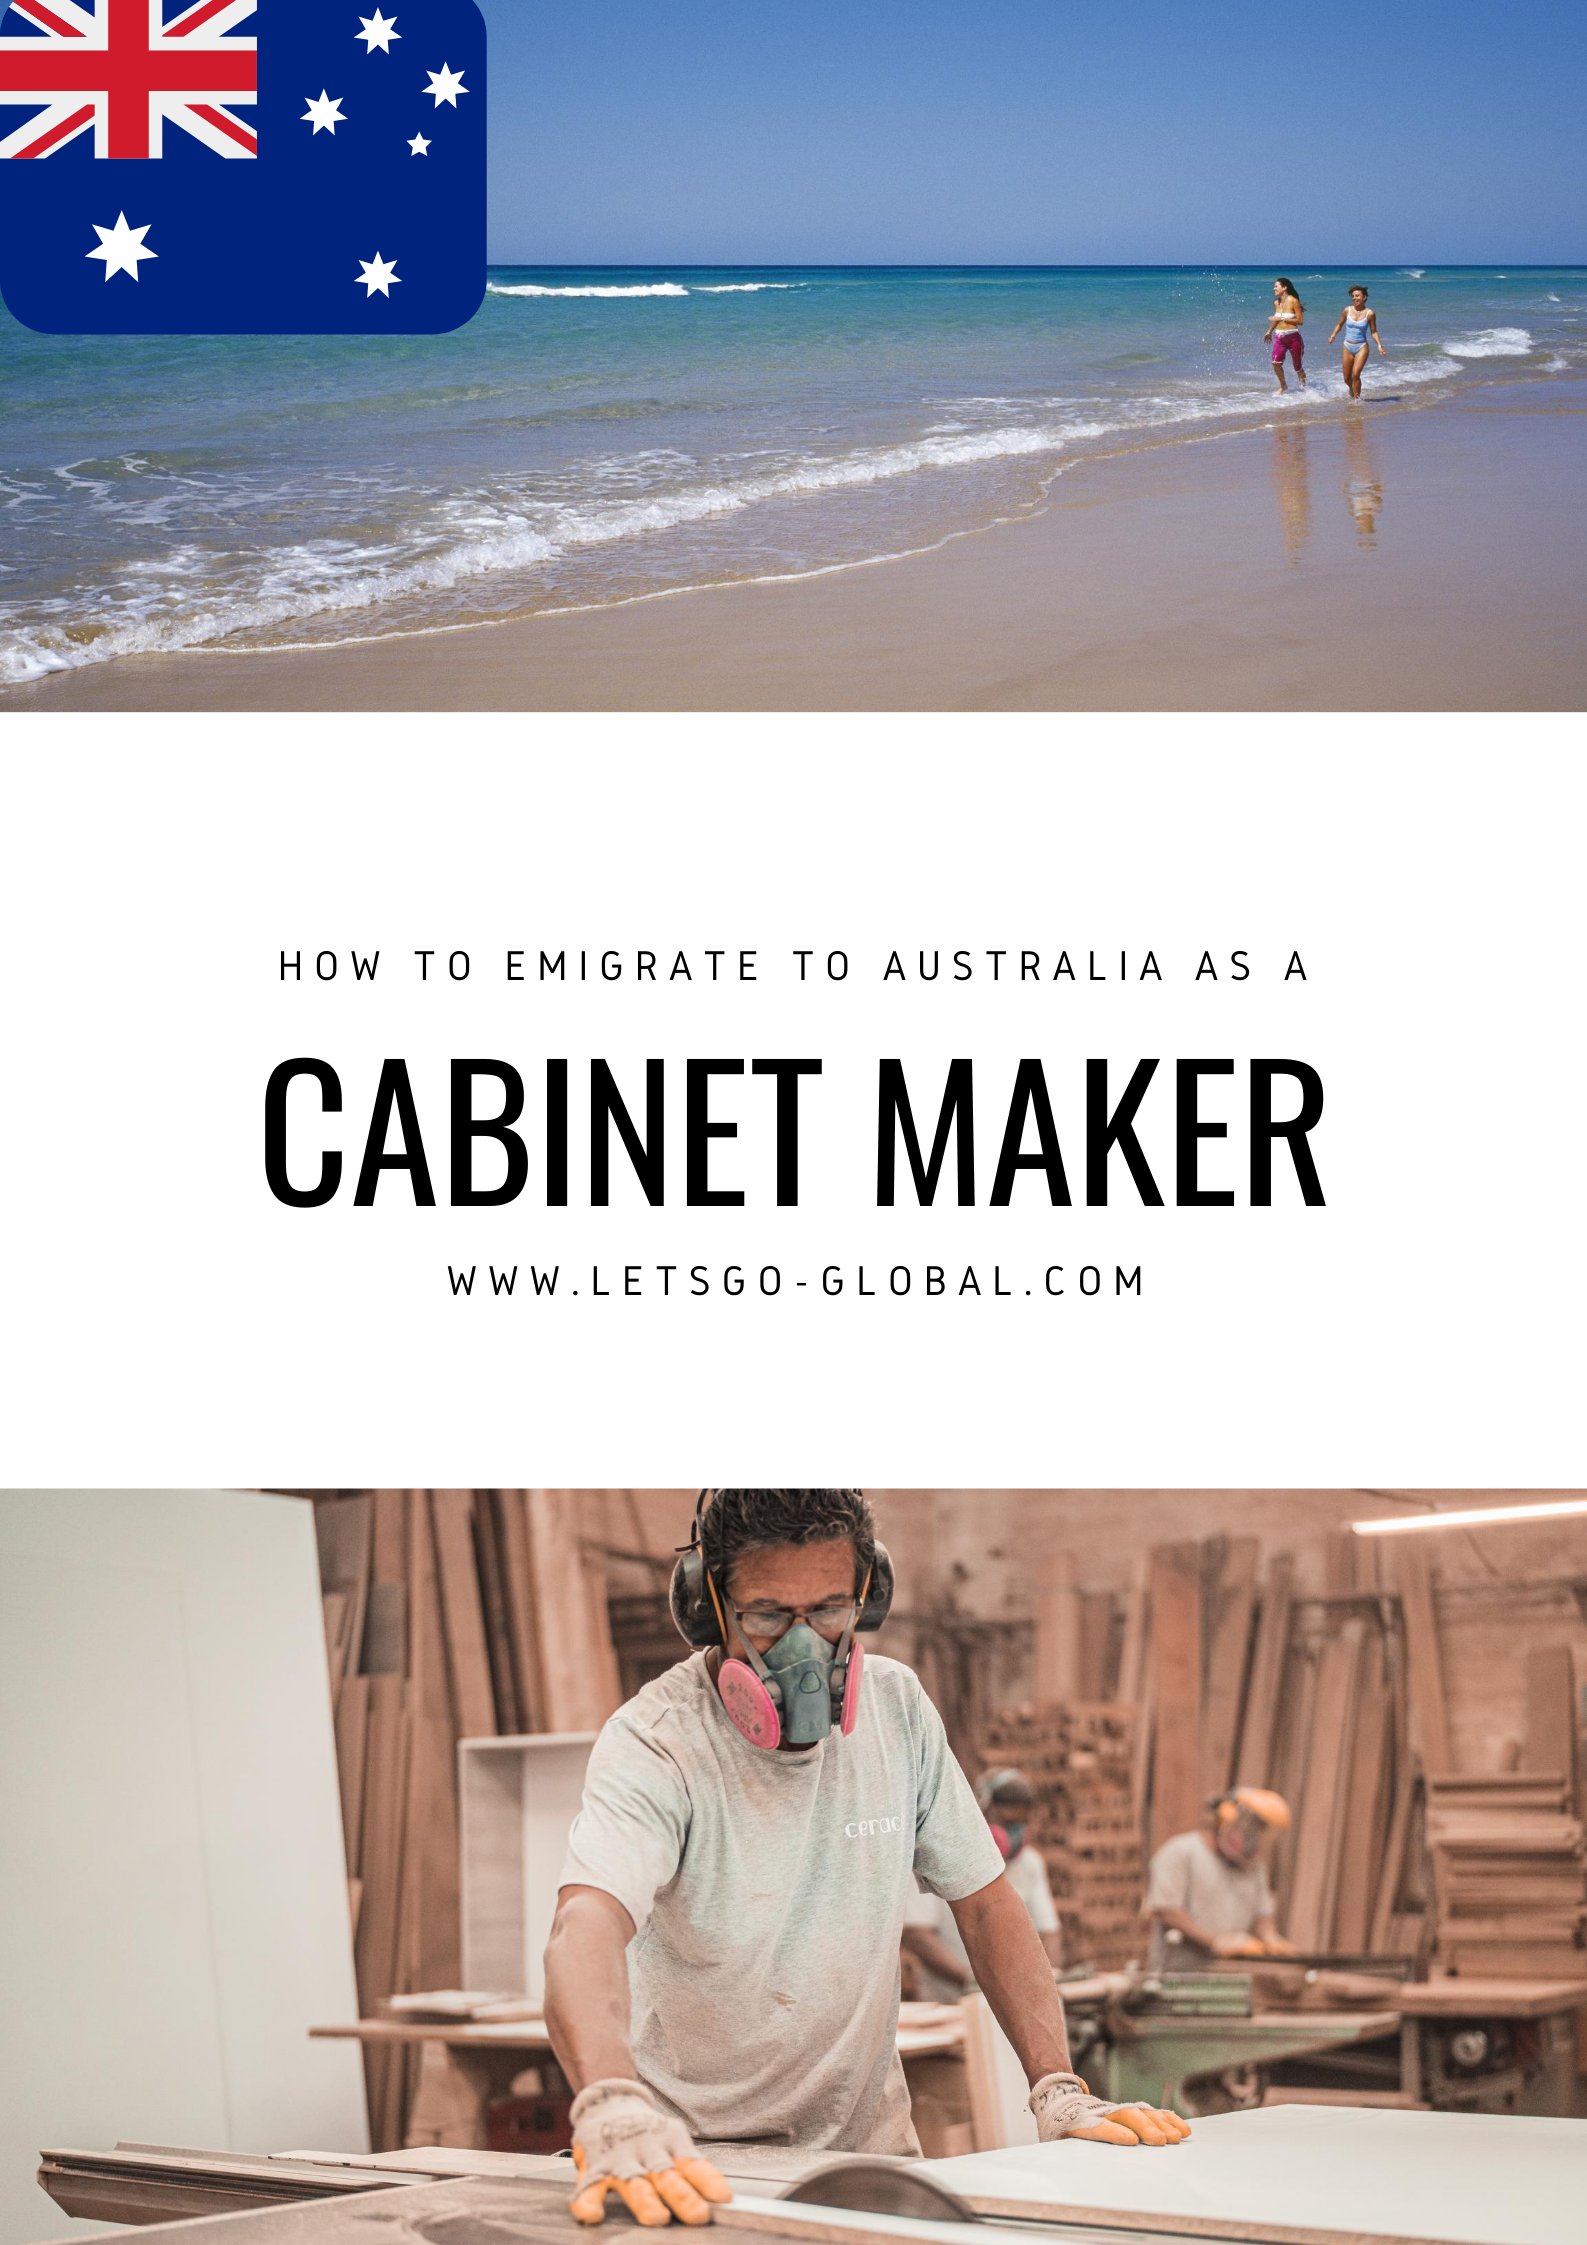 Migrate to Australia as a Cabinet Maker